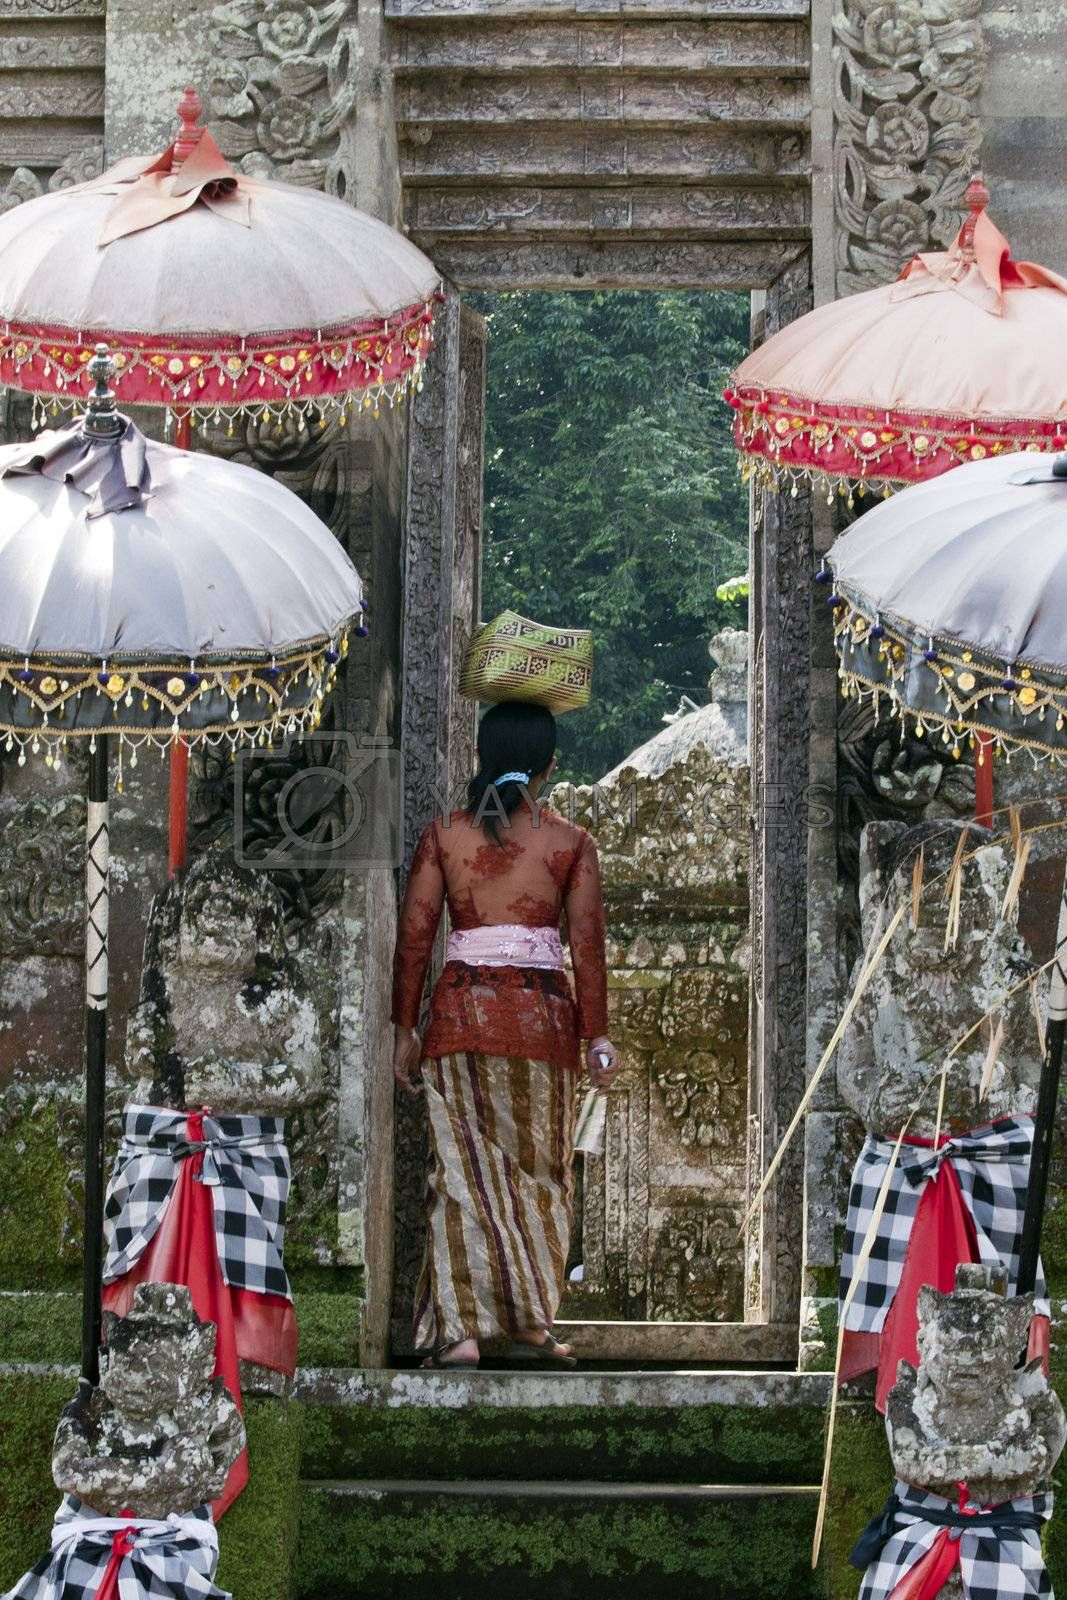 Balinese woman entering a temple